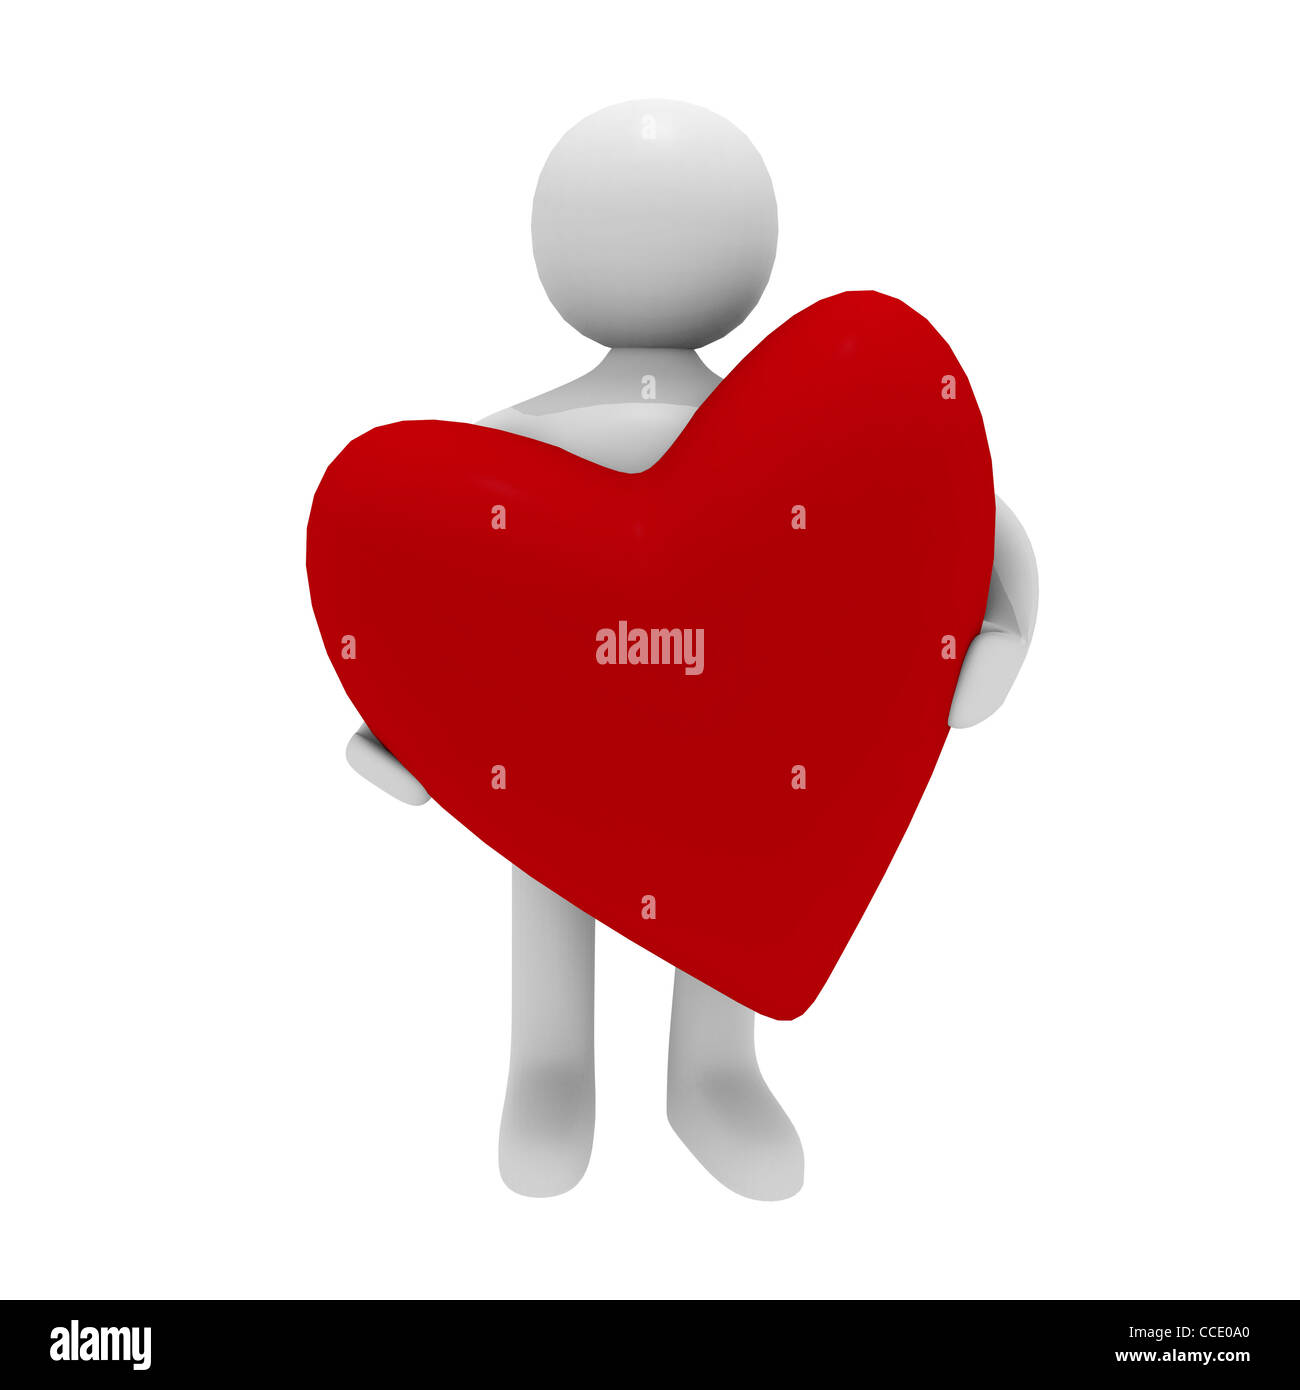 Man with a red heart, 3D image - Stock Image